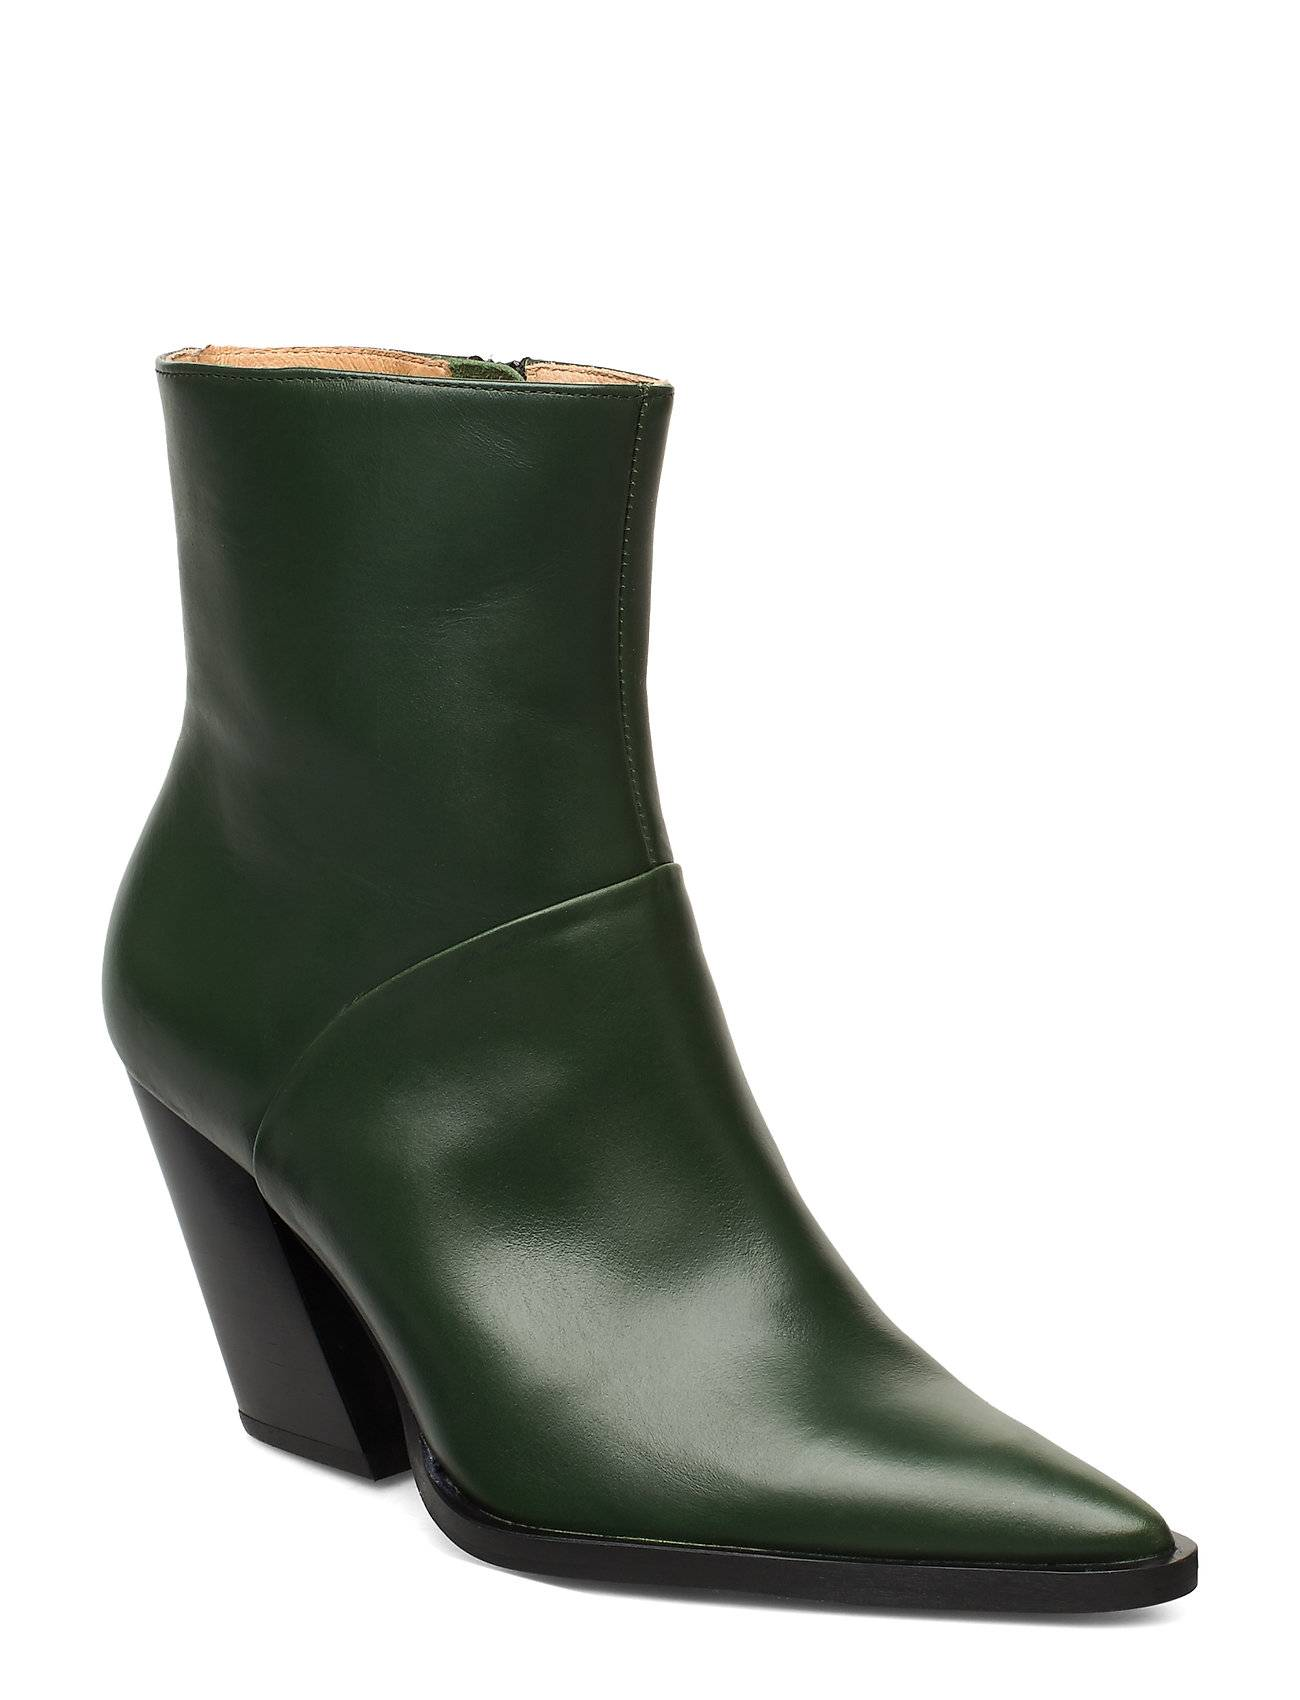 ANNY NORD Escape From The West Ankle Boot Shoes Boots Ankle Boots Ankle Boots With Heel Vihreä